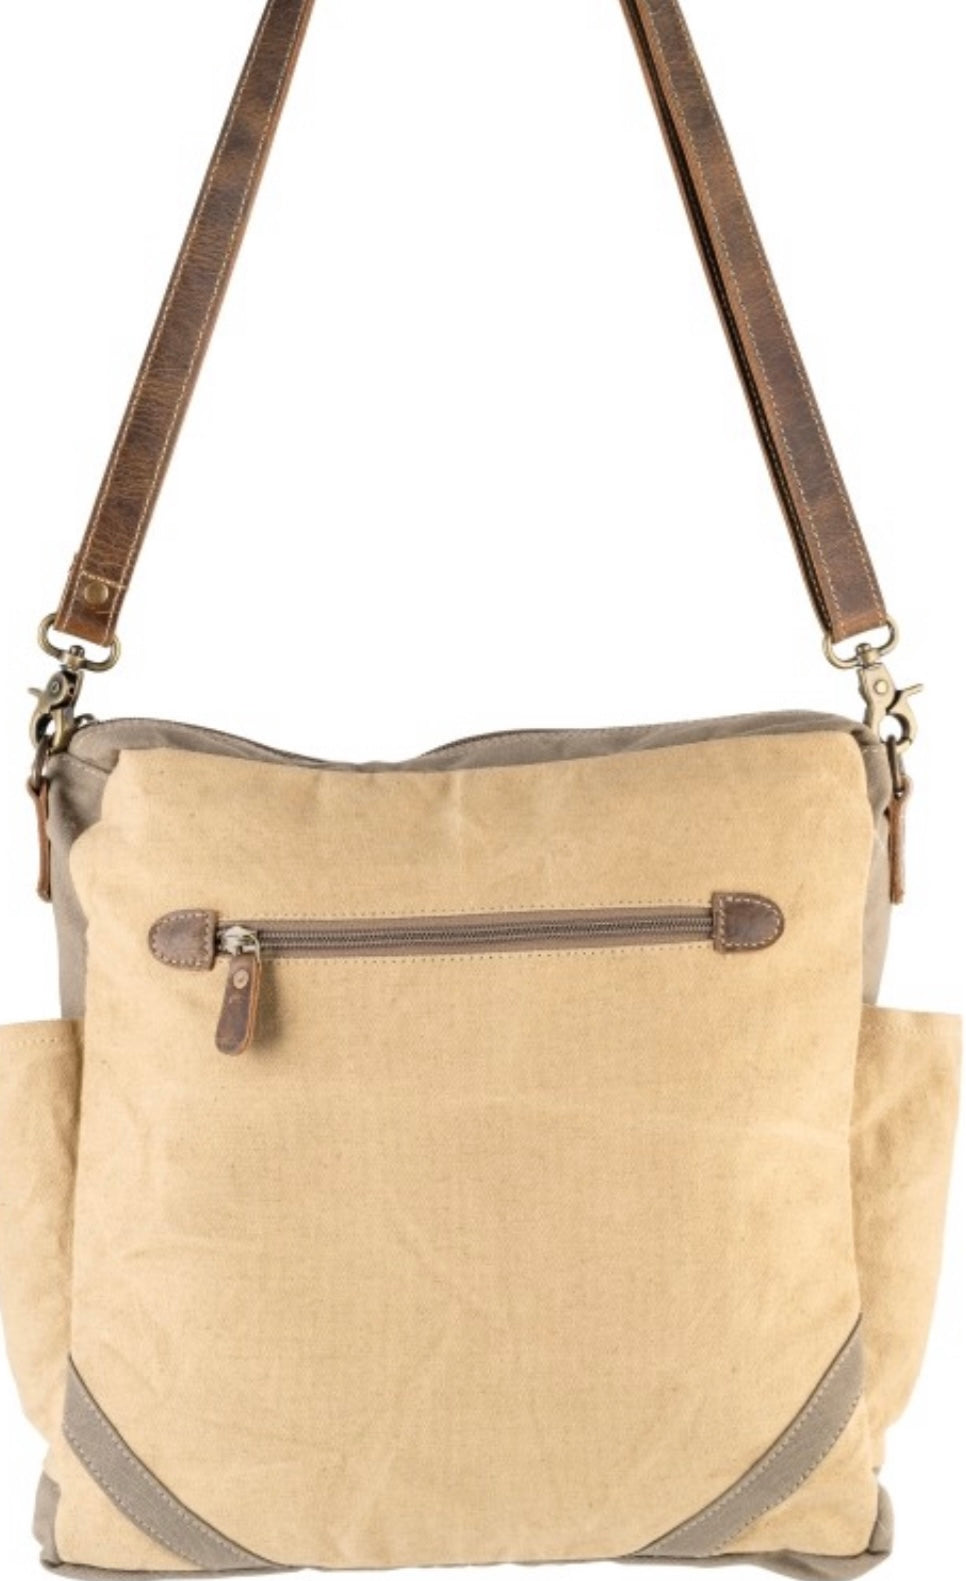 DARCY CANVAS SHOULDER BAG - The Wall Kids, Inc.